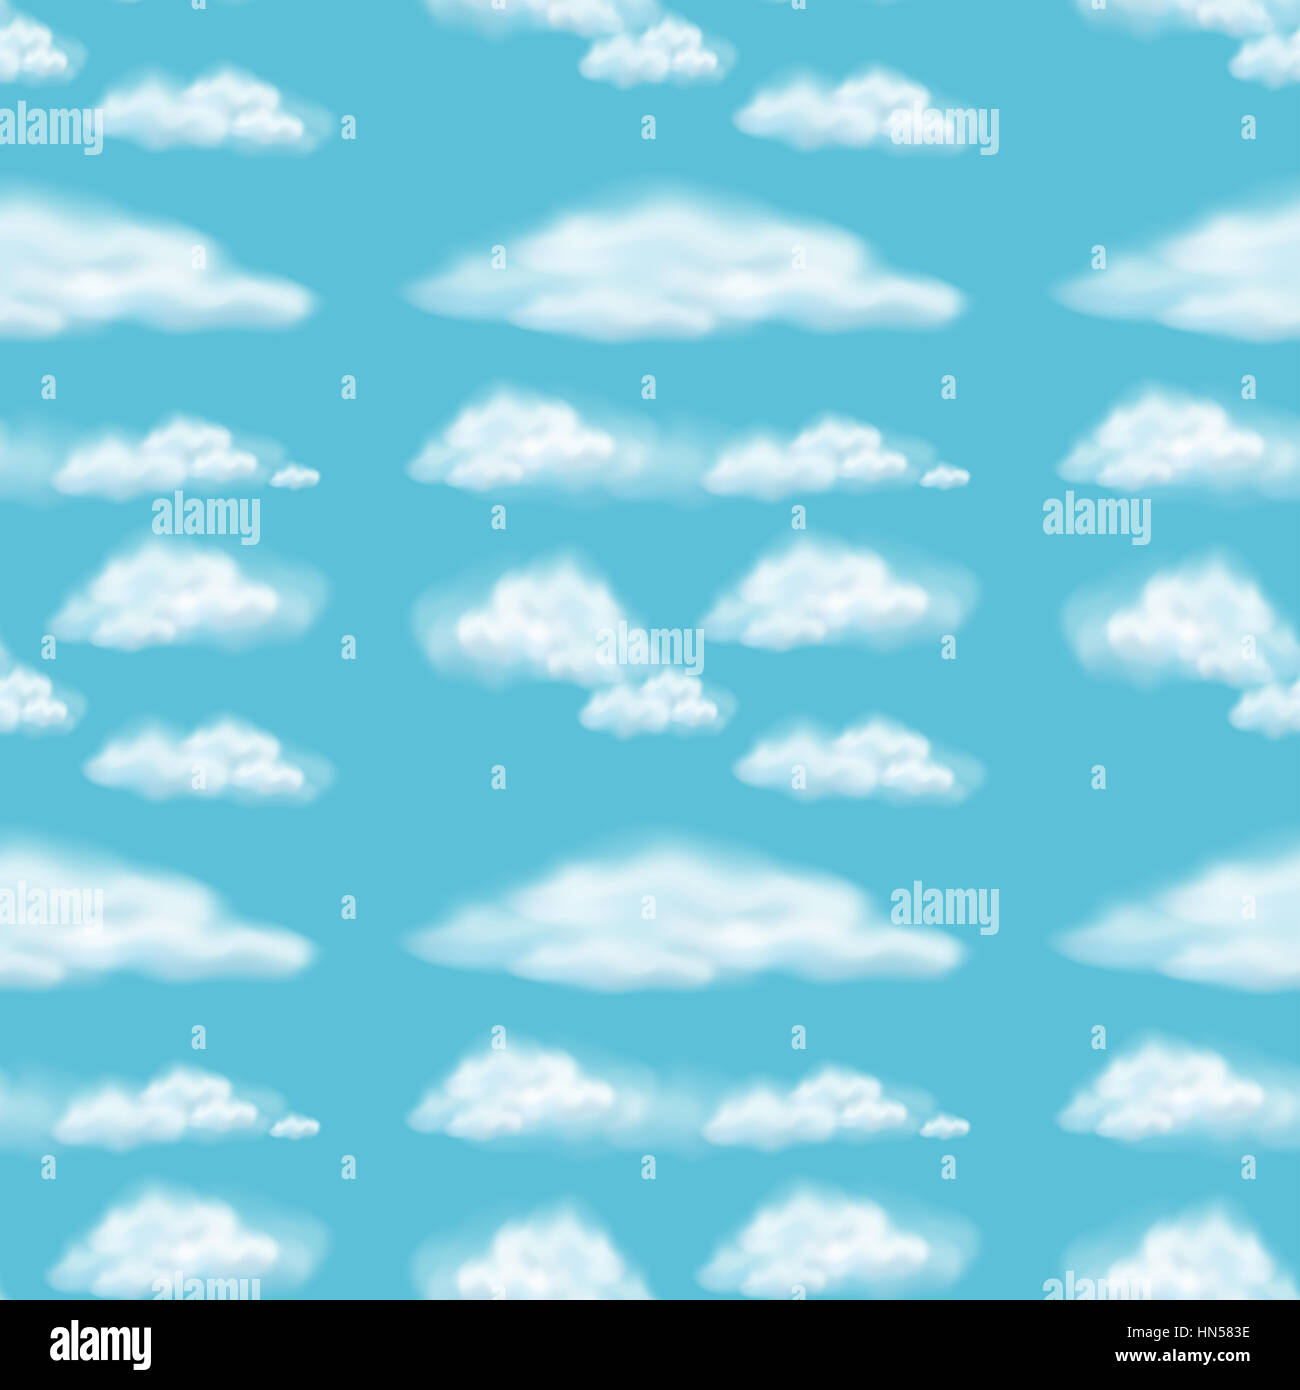 Seamless background design with fluffy clouds illustration - Stock Image